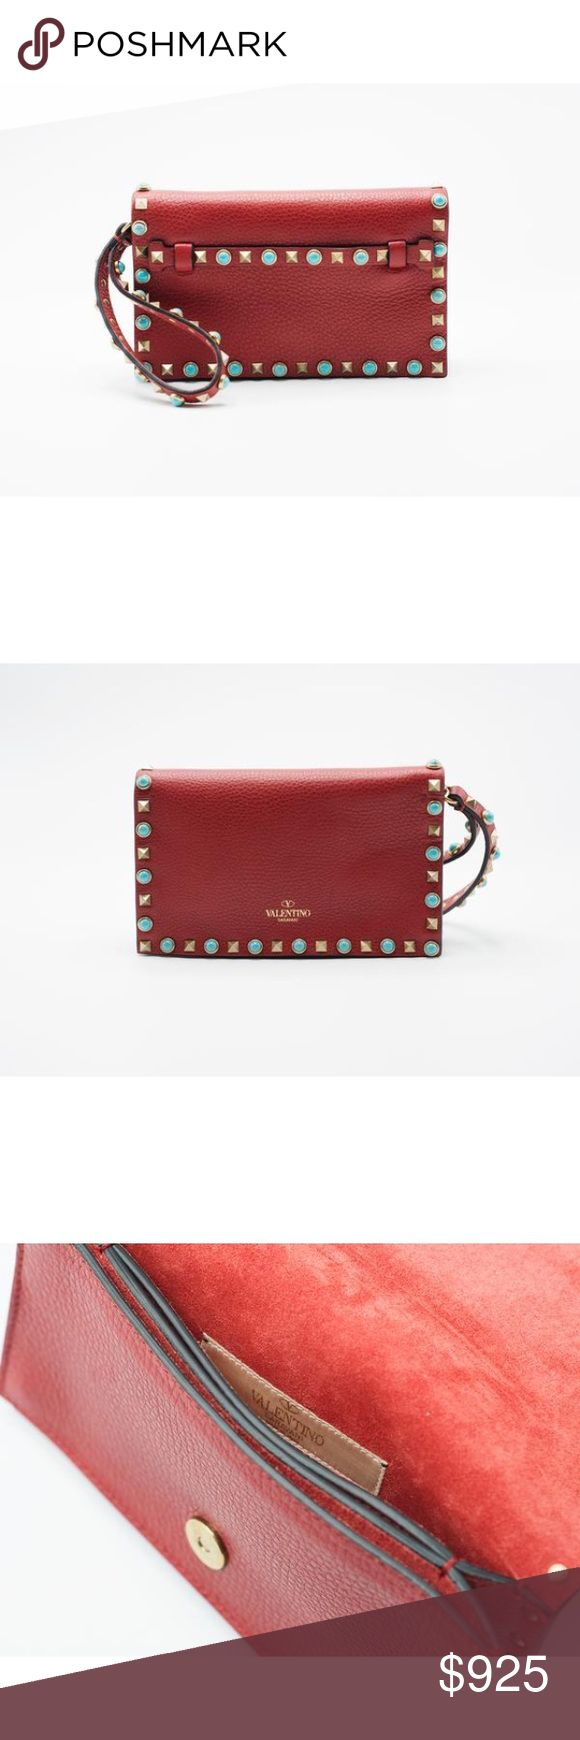 Valentino red smooth leather Rockstud flap clutch Brand New in Original Box with Dust bag and Original Tag  Retails in Stores and Online $2145 Valentino's red smooth leather Rockstud flap clutch is constructed with a flat clutch handle and detailed with the Turqouise signature studs. Grained leather clutch in 'rosso' red. Signature pyramid stud detailing throughout. Grab handle.  Signature golden Rockstud and turquoise cabochon trim.  Flat hand strap; wristlet strap.  Flap top closure.  5''…